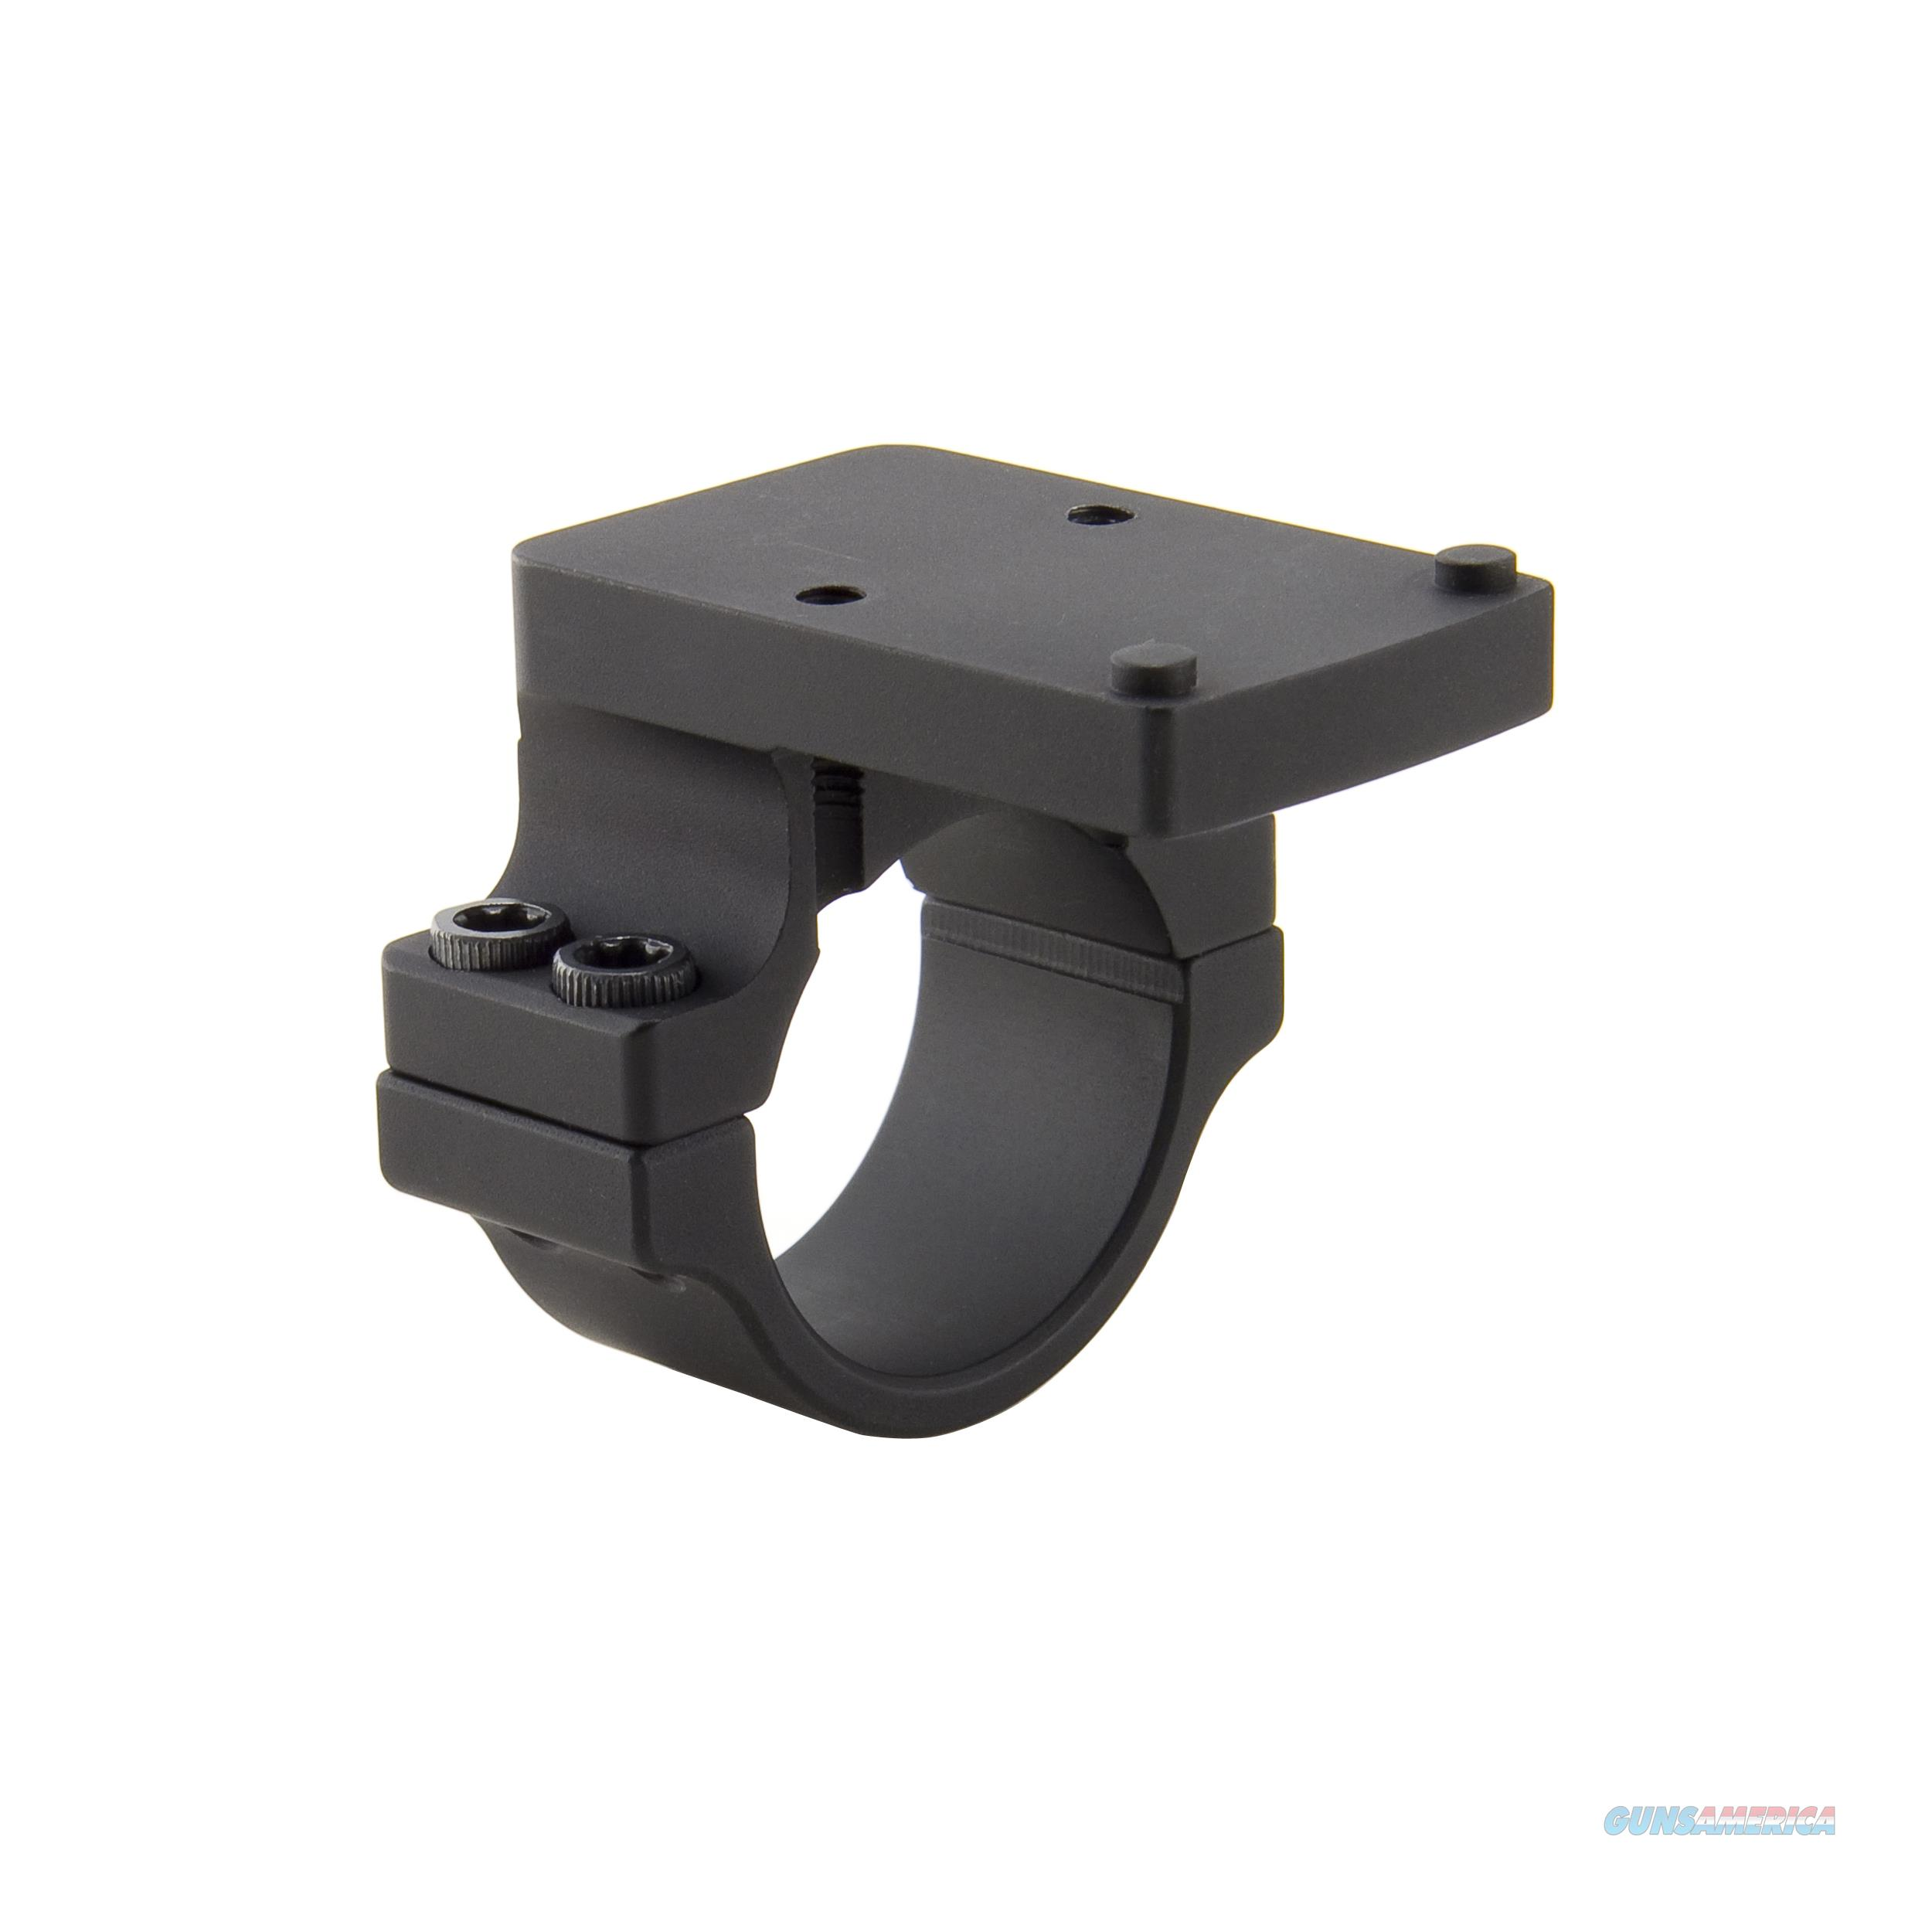 Trijicon Rmr Mount RM65  Non-Guns > Scopes/Mounts/Rings & Optics > Mounts > Other